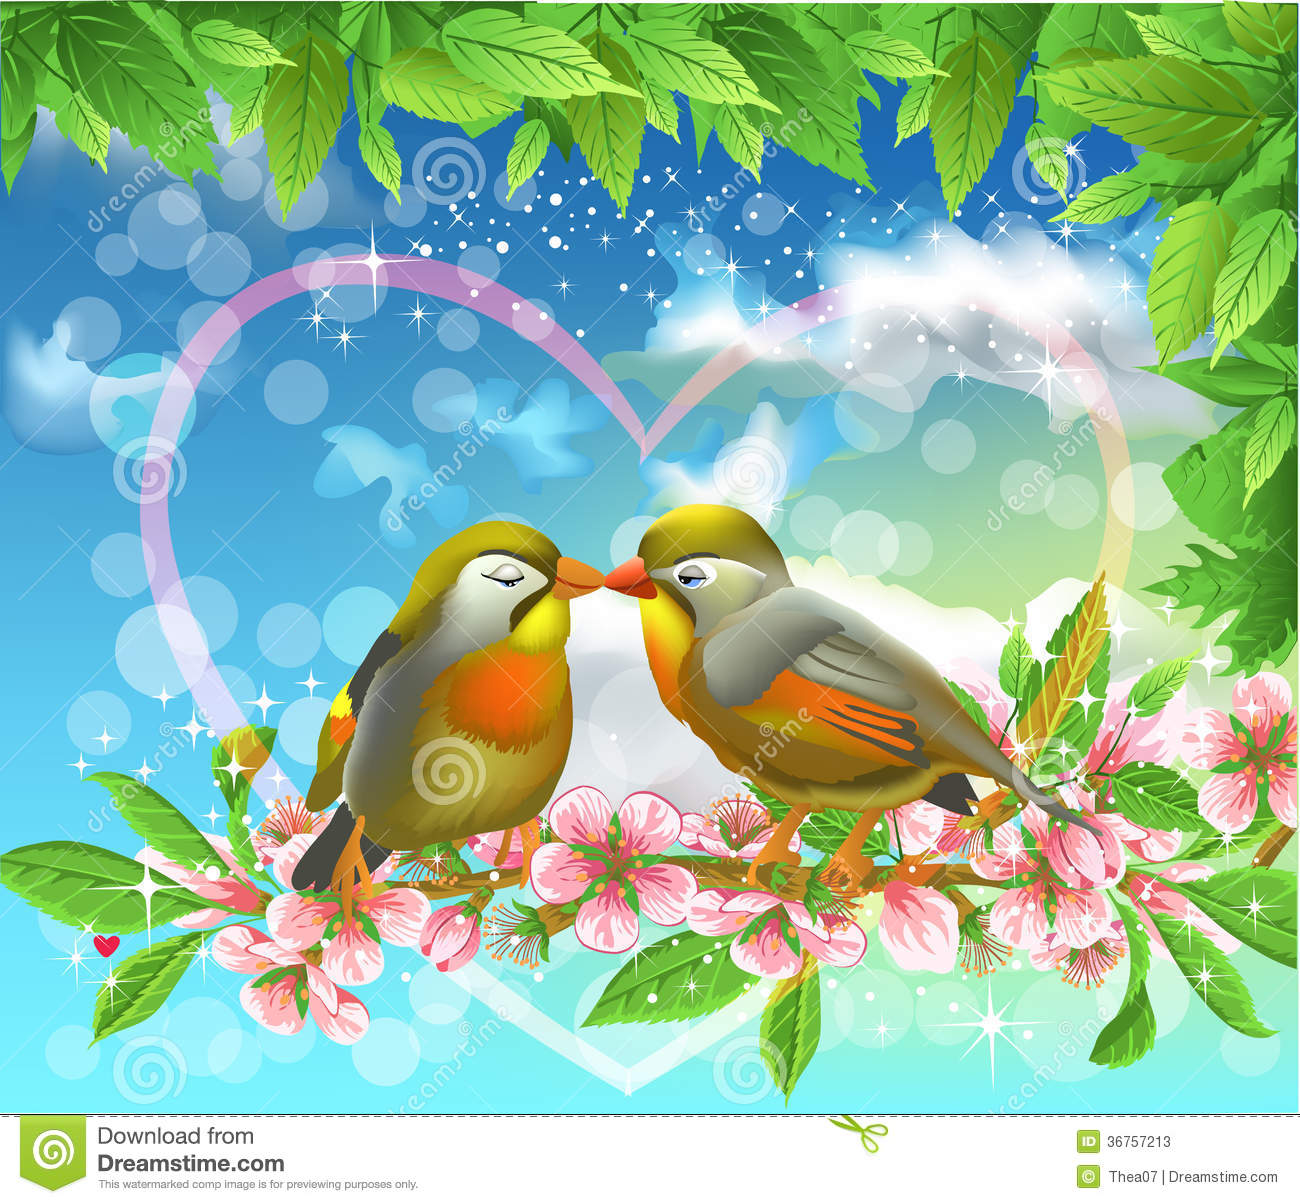 kissing parrots dating 10 surprising bird mating rituals their fascinating courtship and mating rituals make our own dating (aka spectacled parrots) enjoy kissing each.